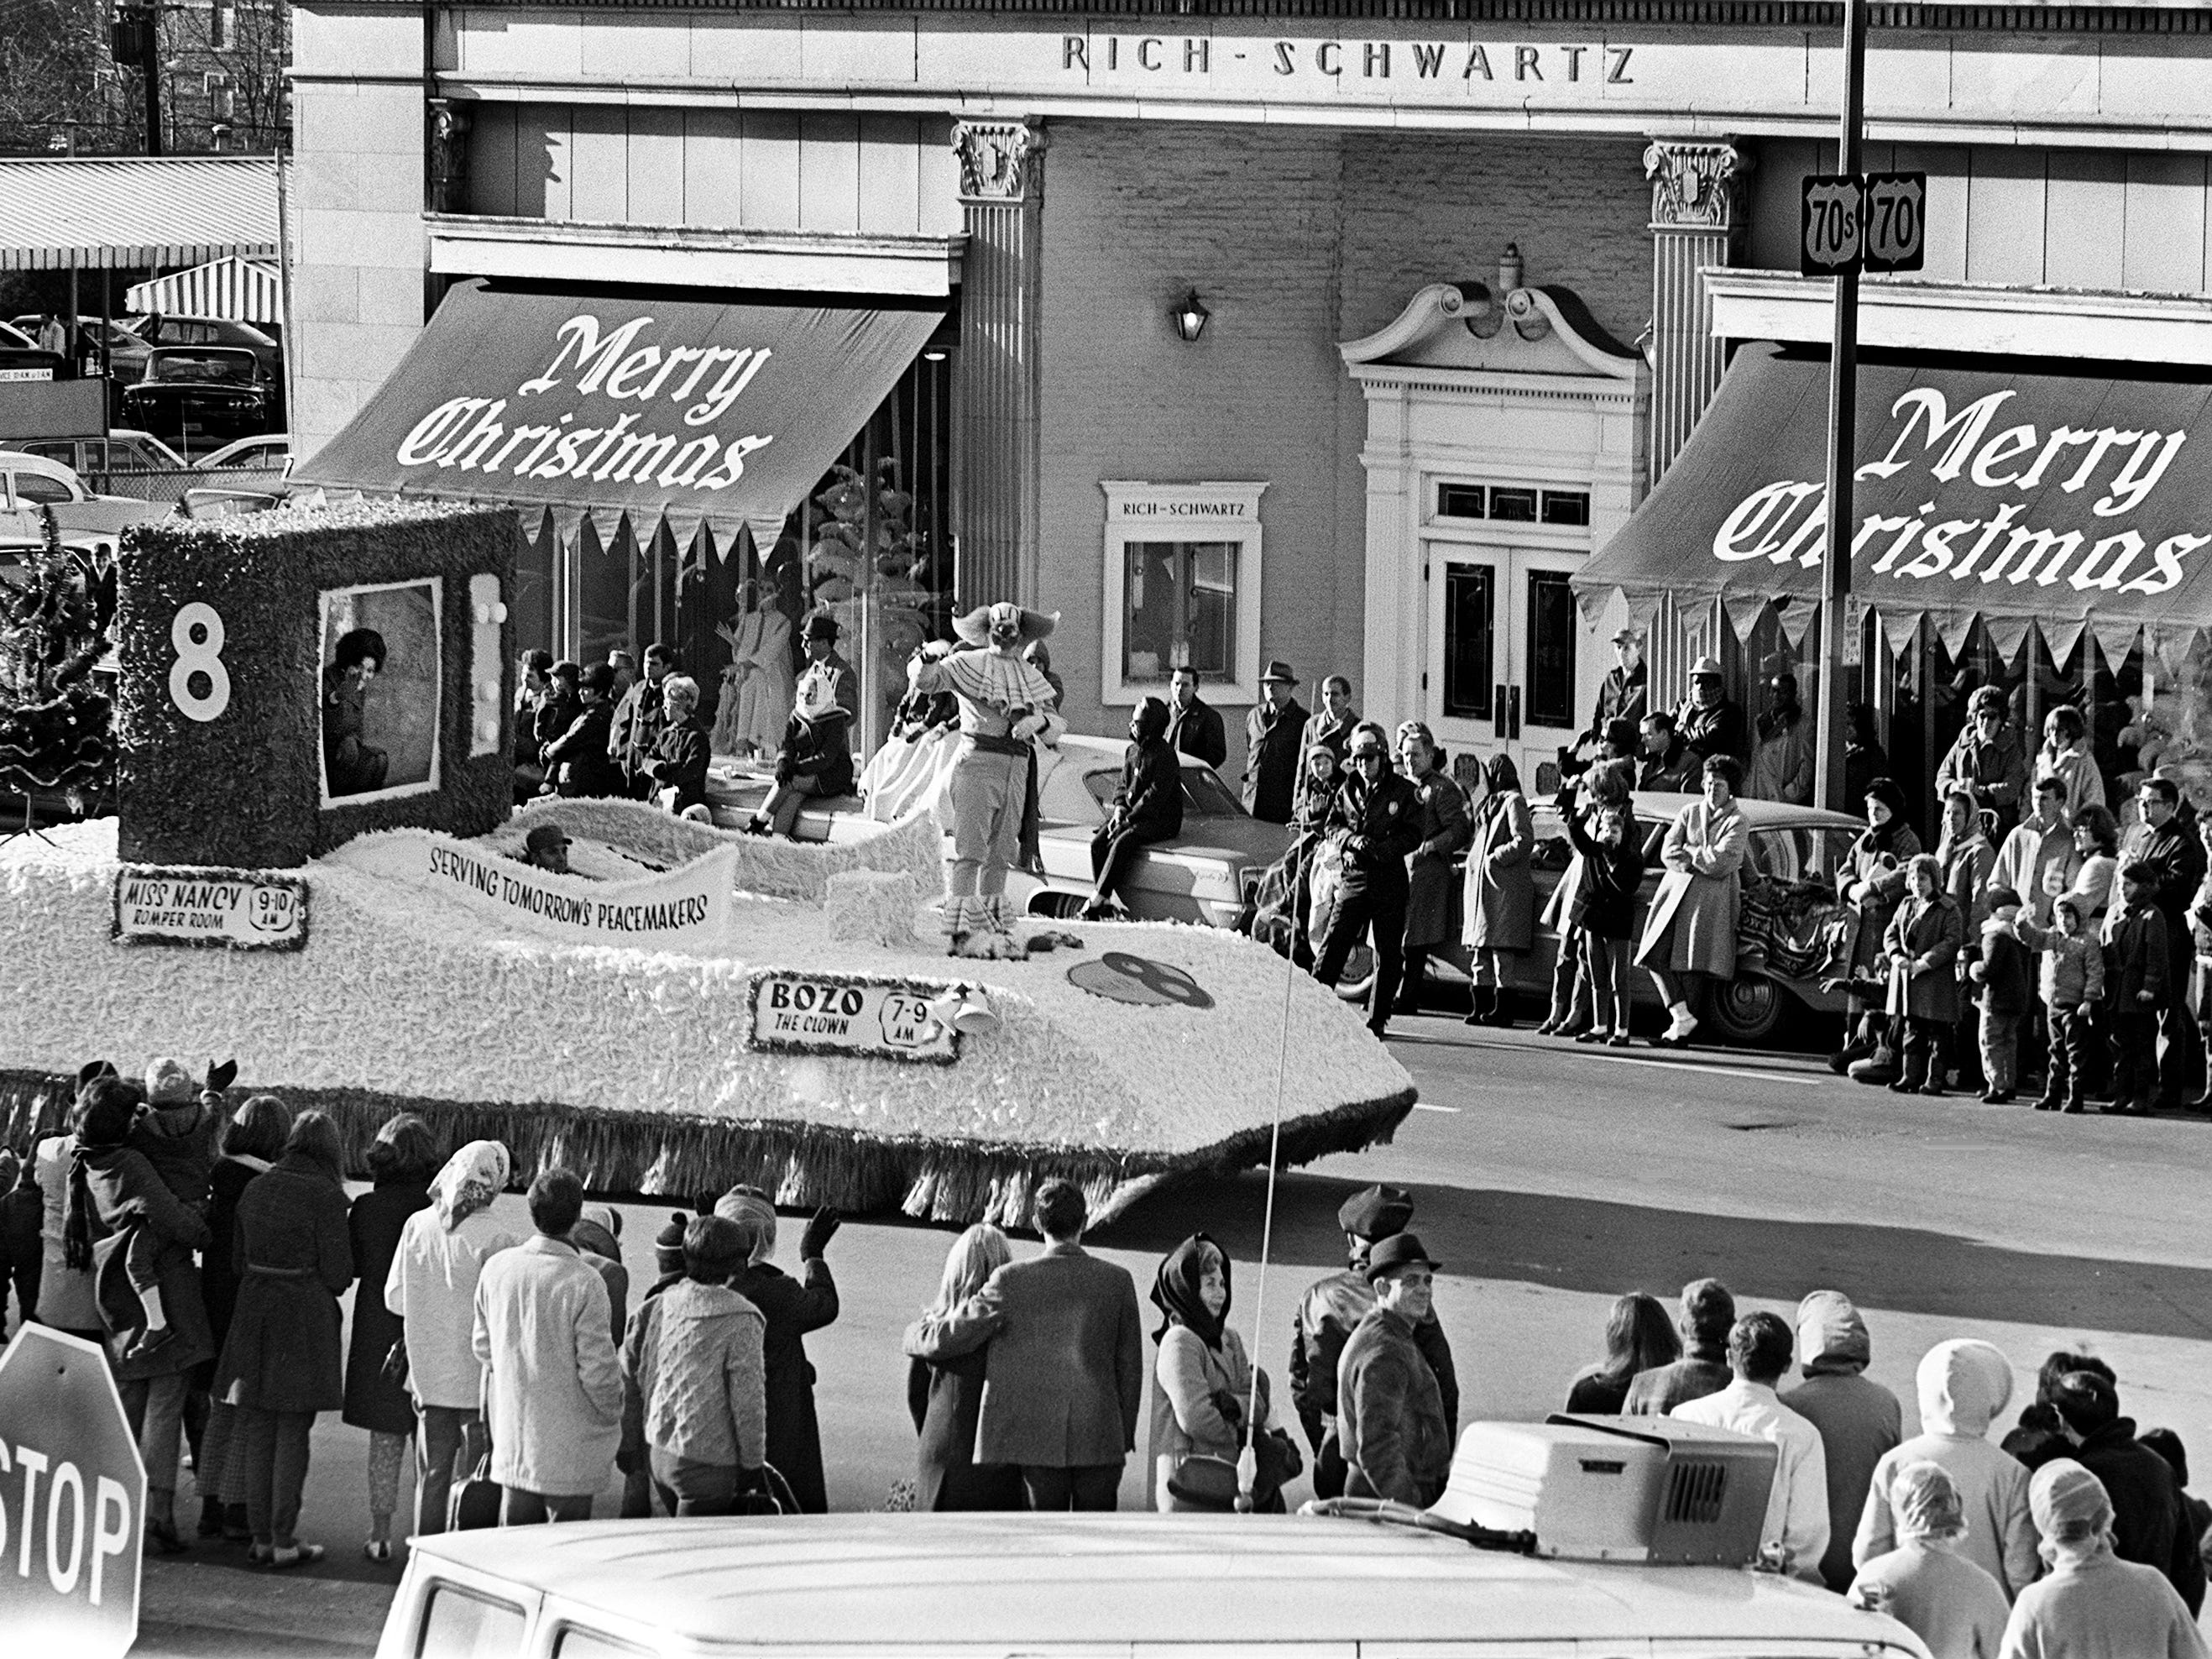 Bozo the Clown, center, and Miss Nancy, left, on the Channel 8 float, waves to the kids lining the street in front of the Rich-Schwartz store during the 16th annual Nashville Christmas parade Dec. 8, 1968.